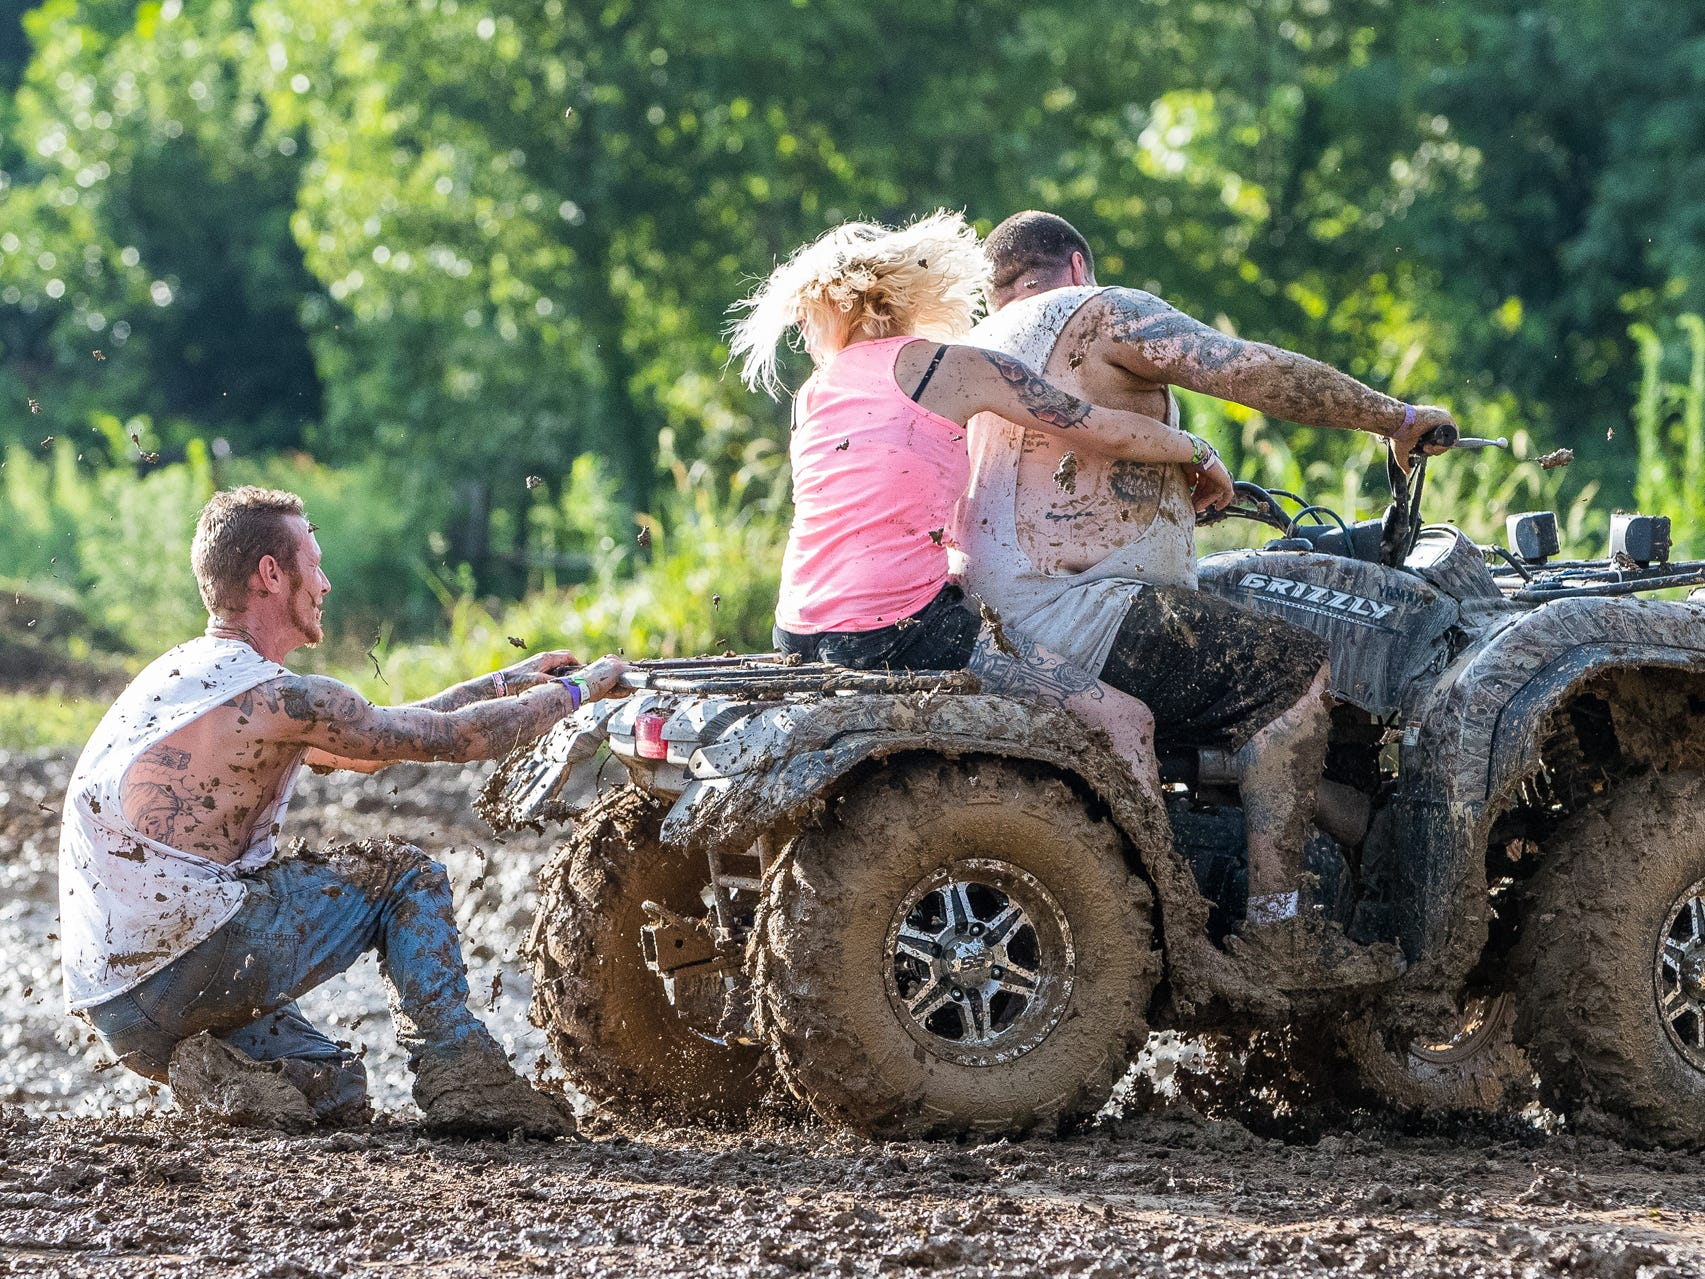 An attendee hangs onto the back of an ATV while getting dragged through the mud during the Redneck Rave at BlackSwan Mudpit in Medora, Ind., on Friday, July 20, 2018.